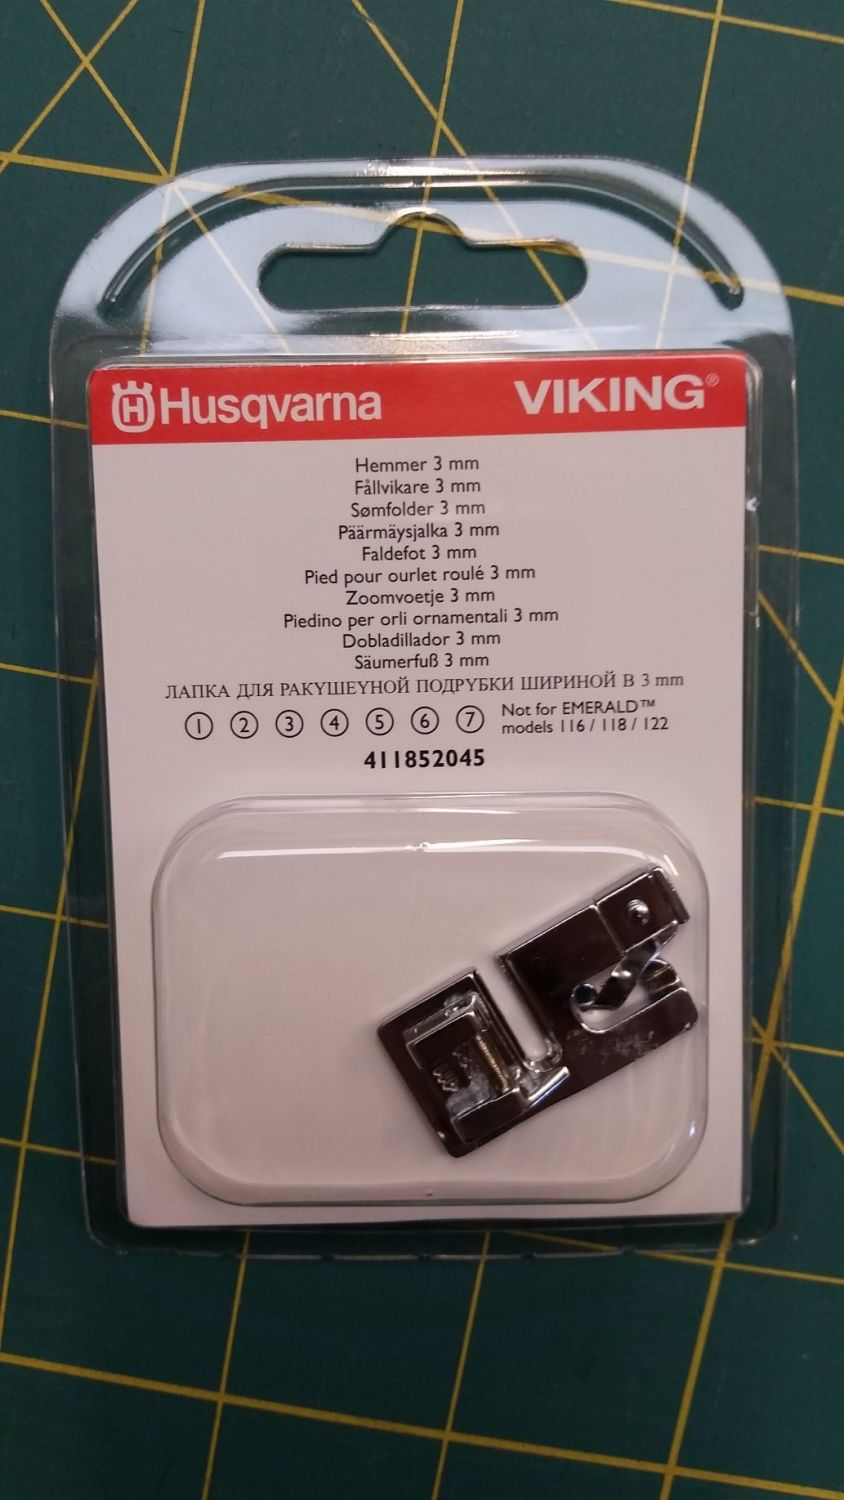 Husqvarna Viking 3mm Shelled Rolled Hem Foot 411852045 Fits most Viking mac